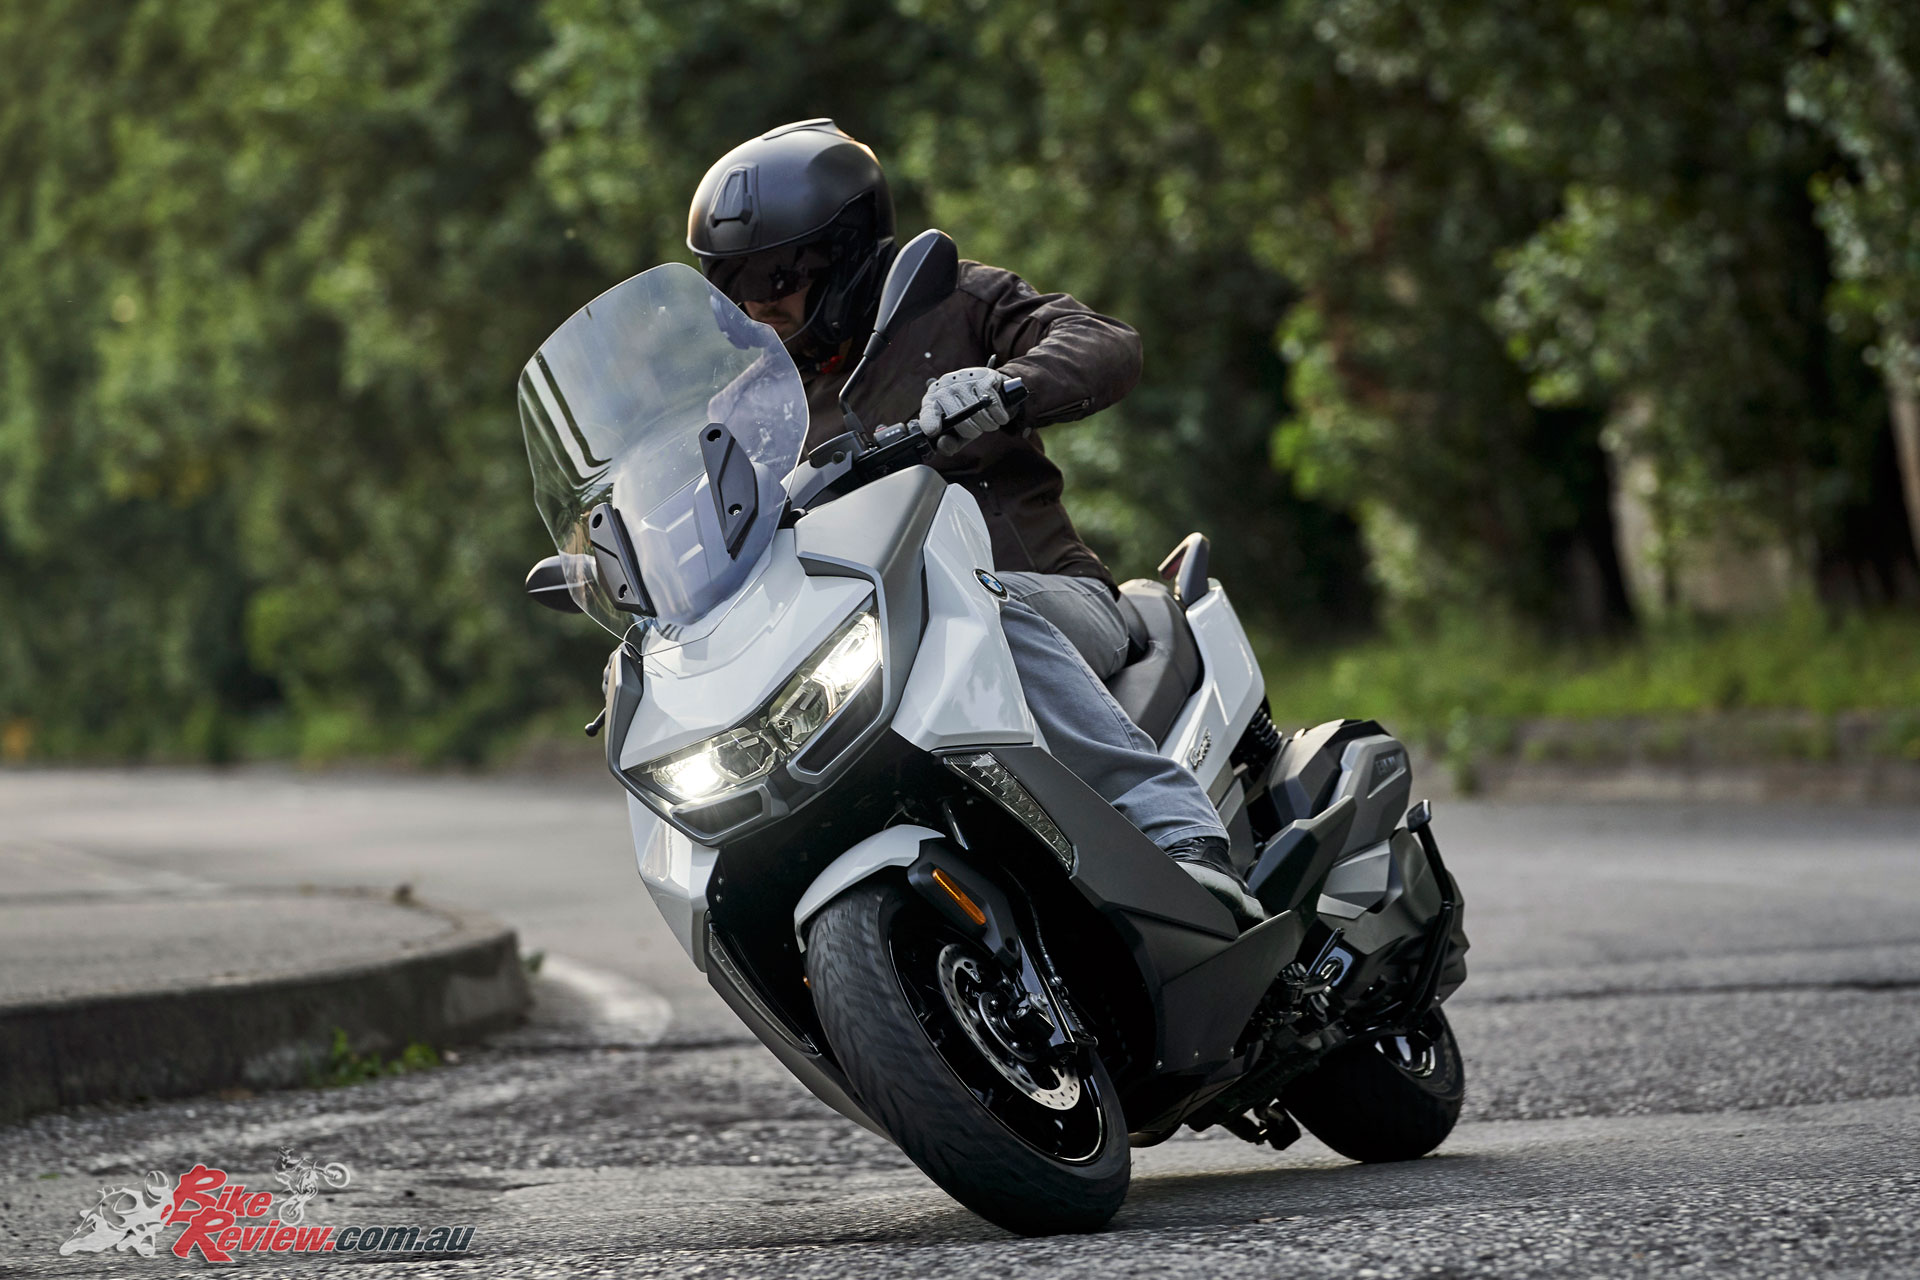 New Model: BMW C 400 GT Scooter - Bike Review